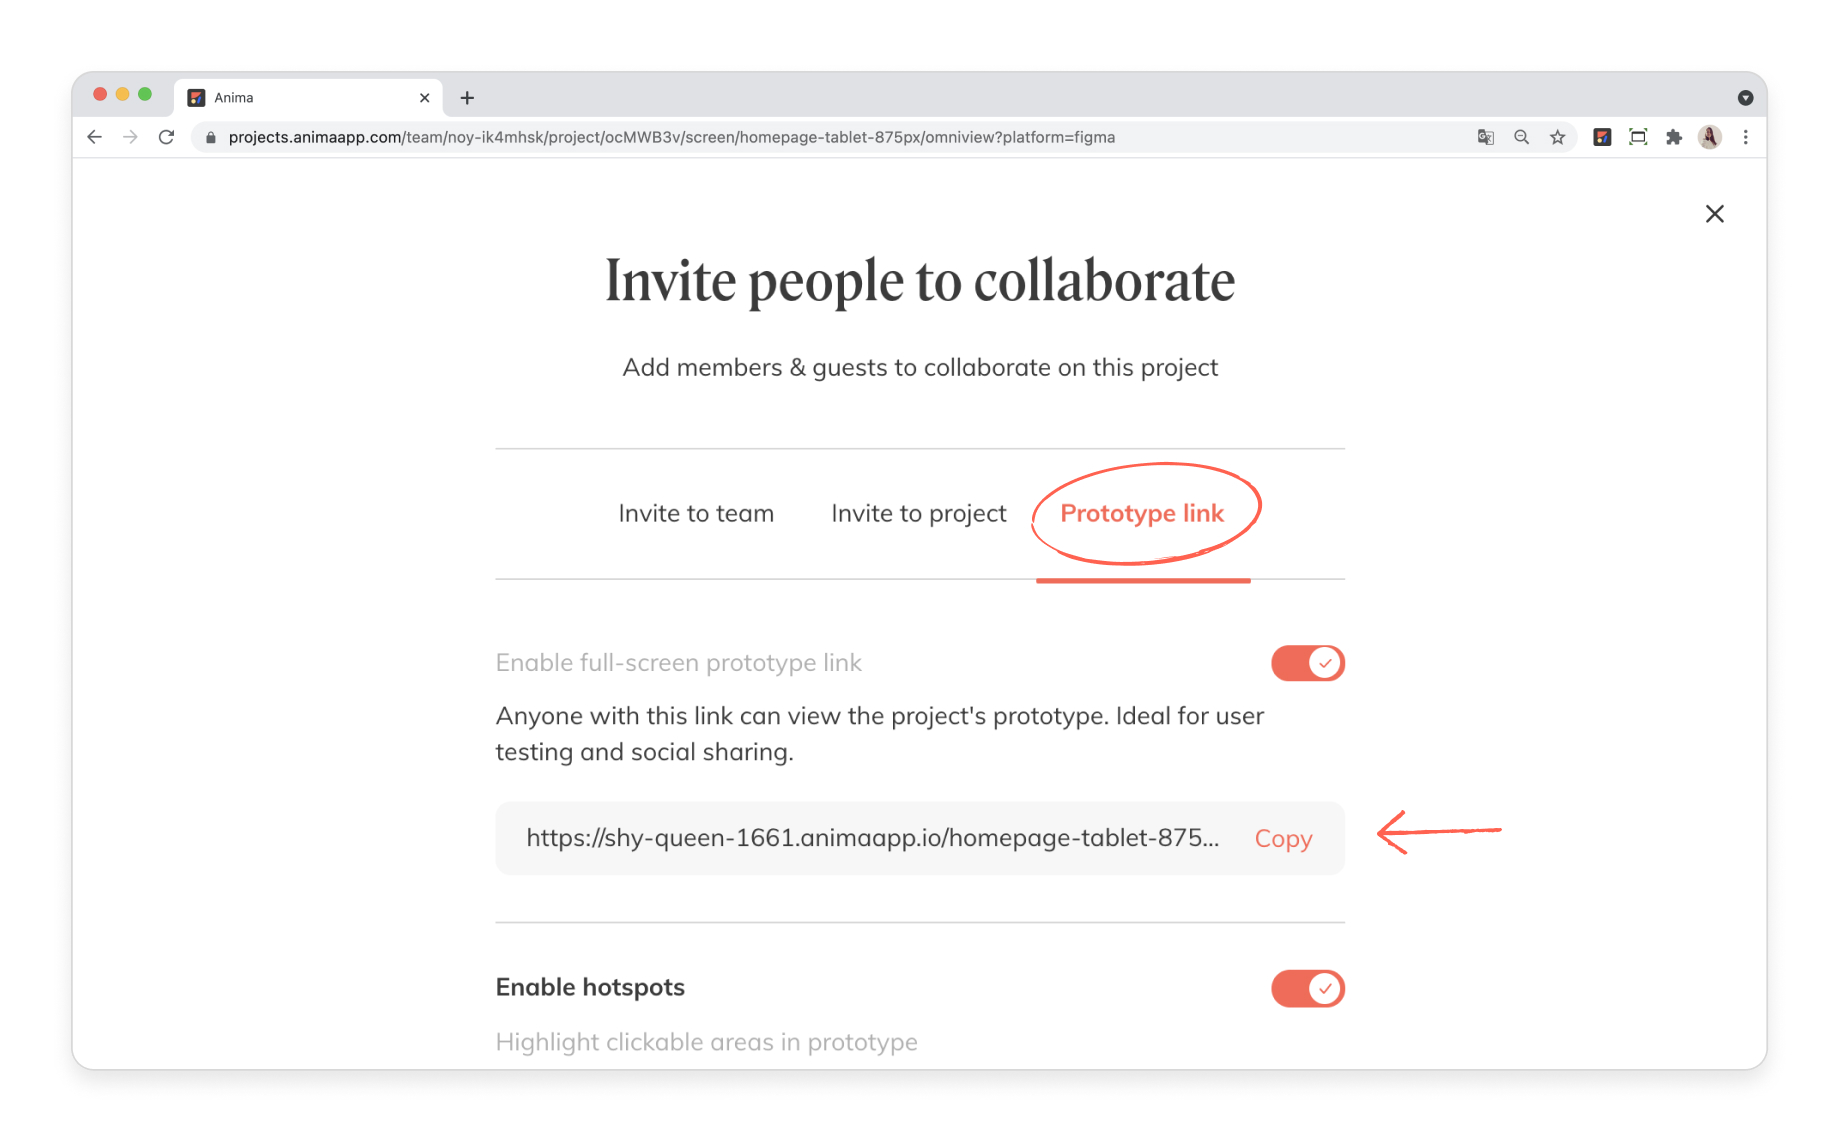 Share your prototype link